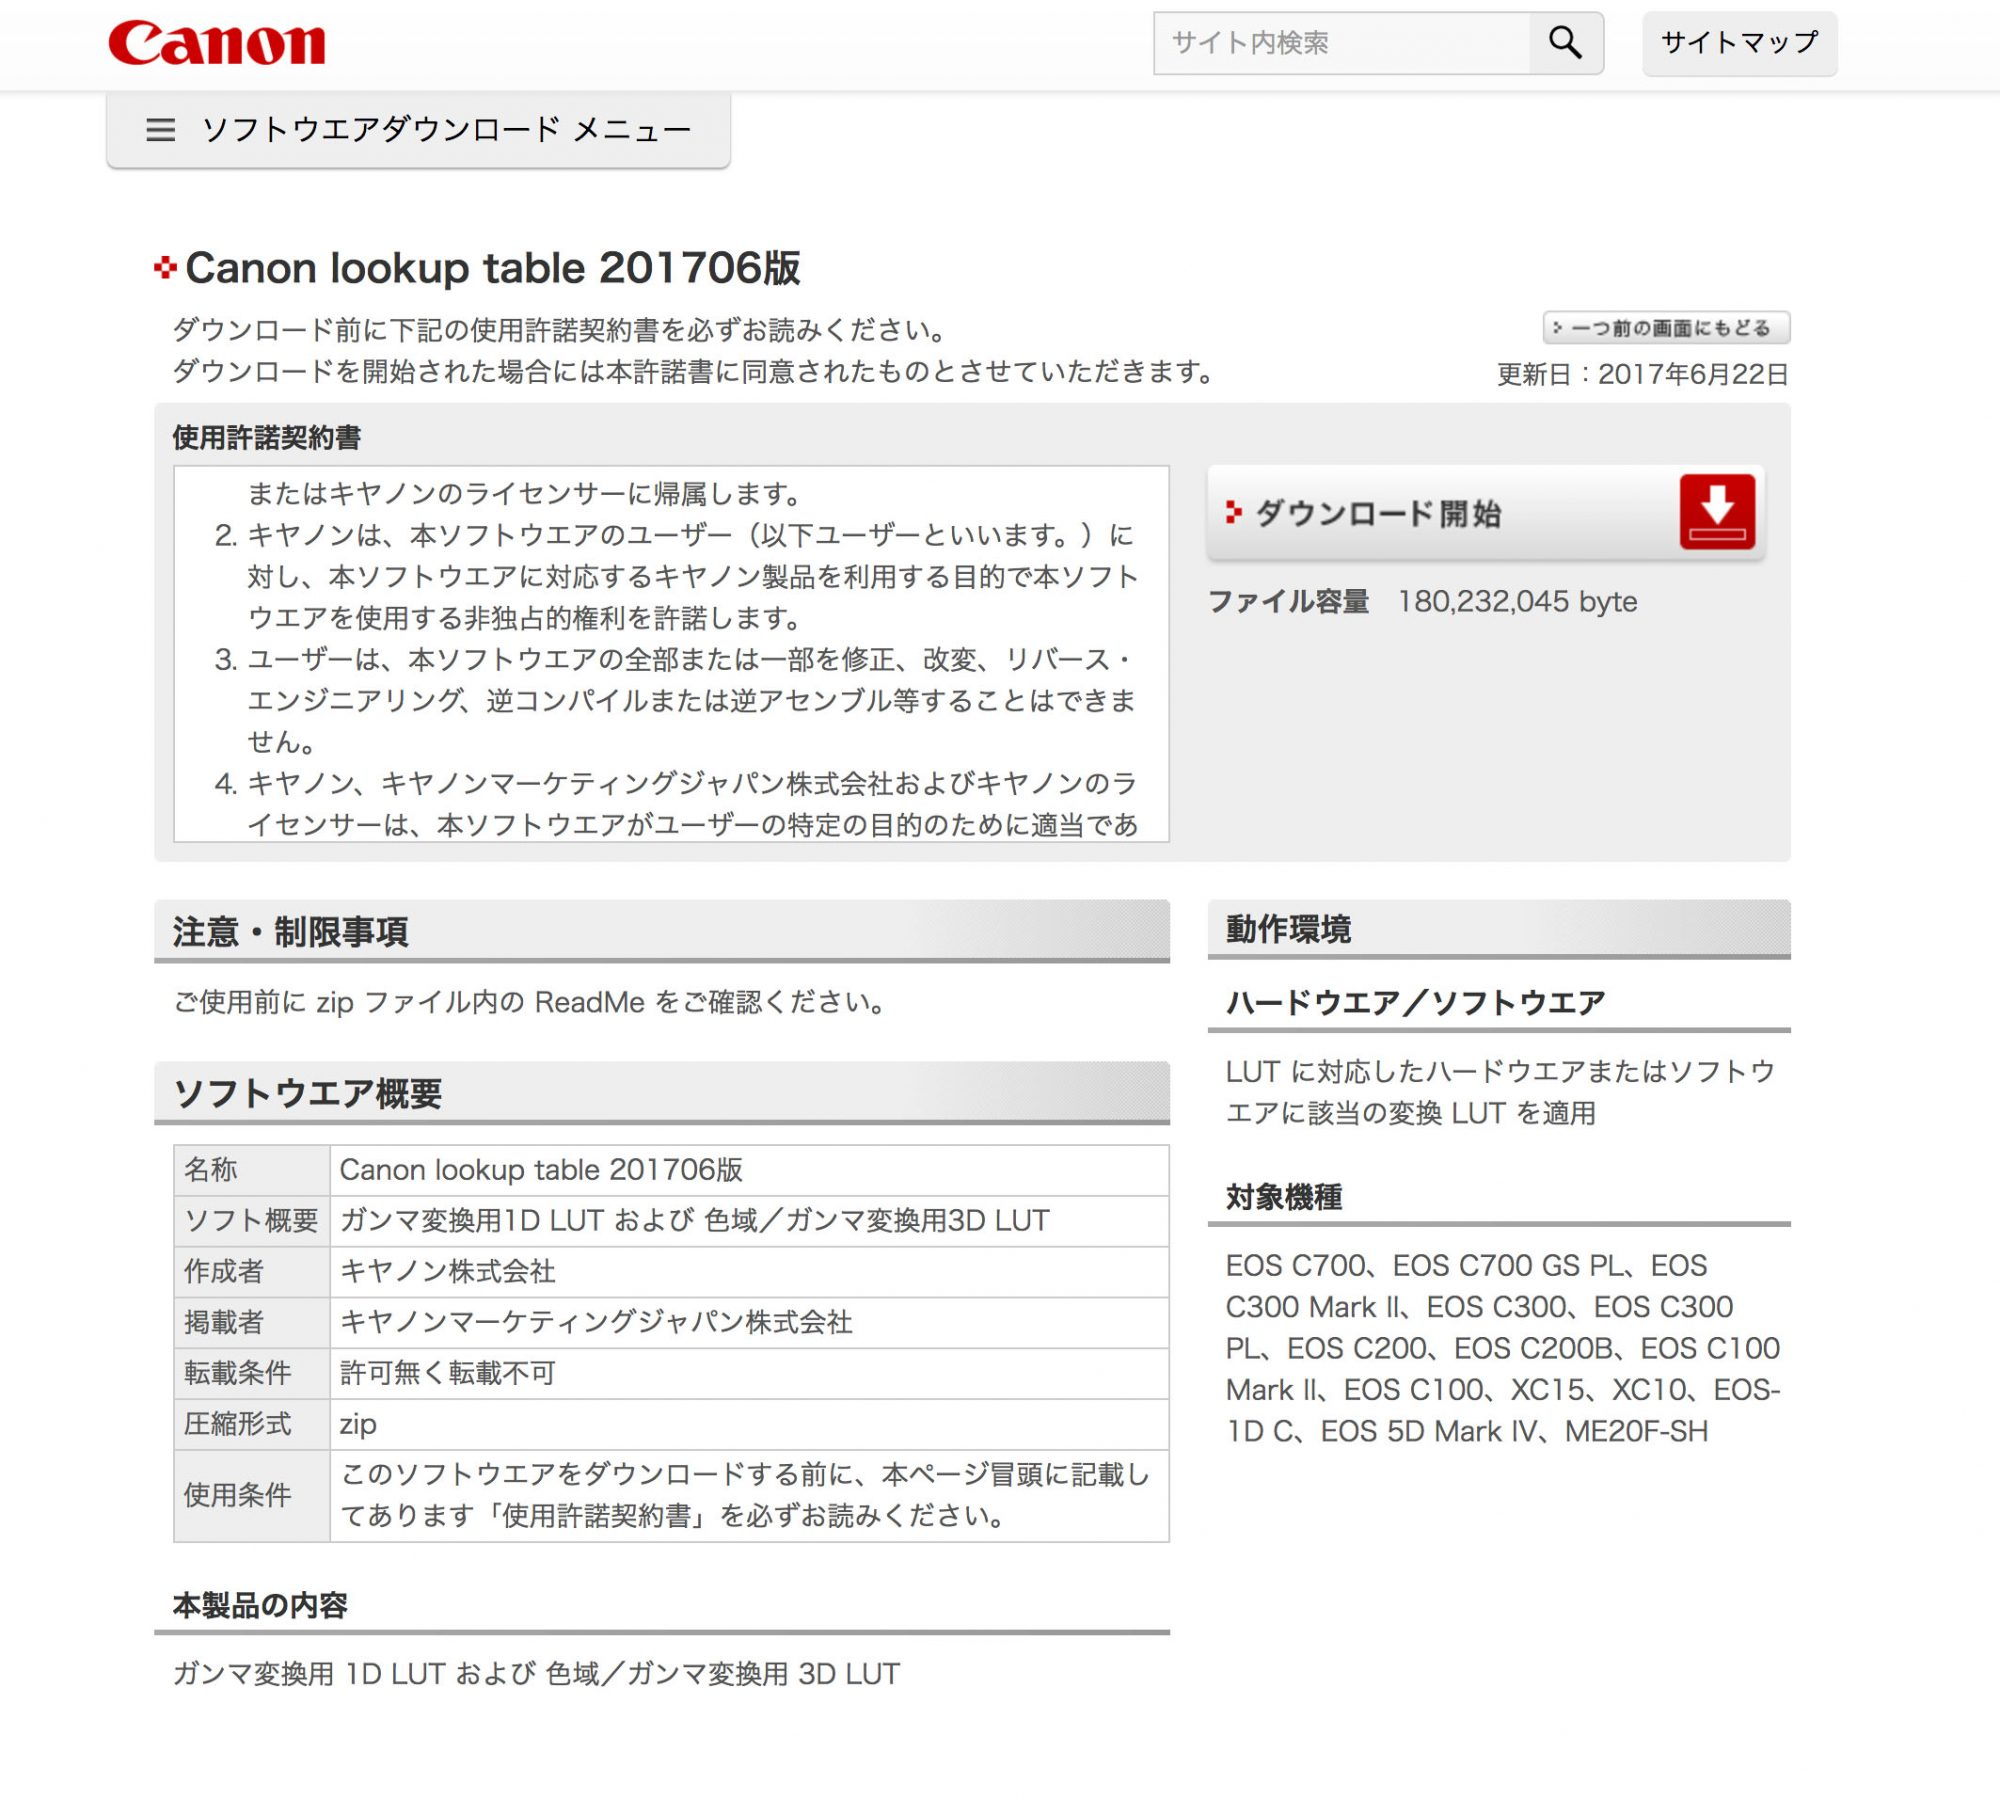 Canon C200 Crm Download